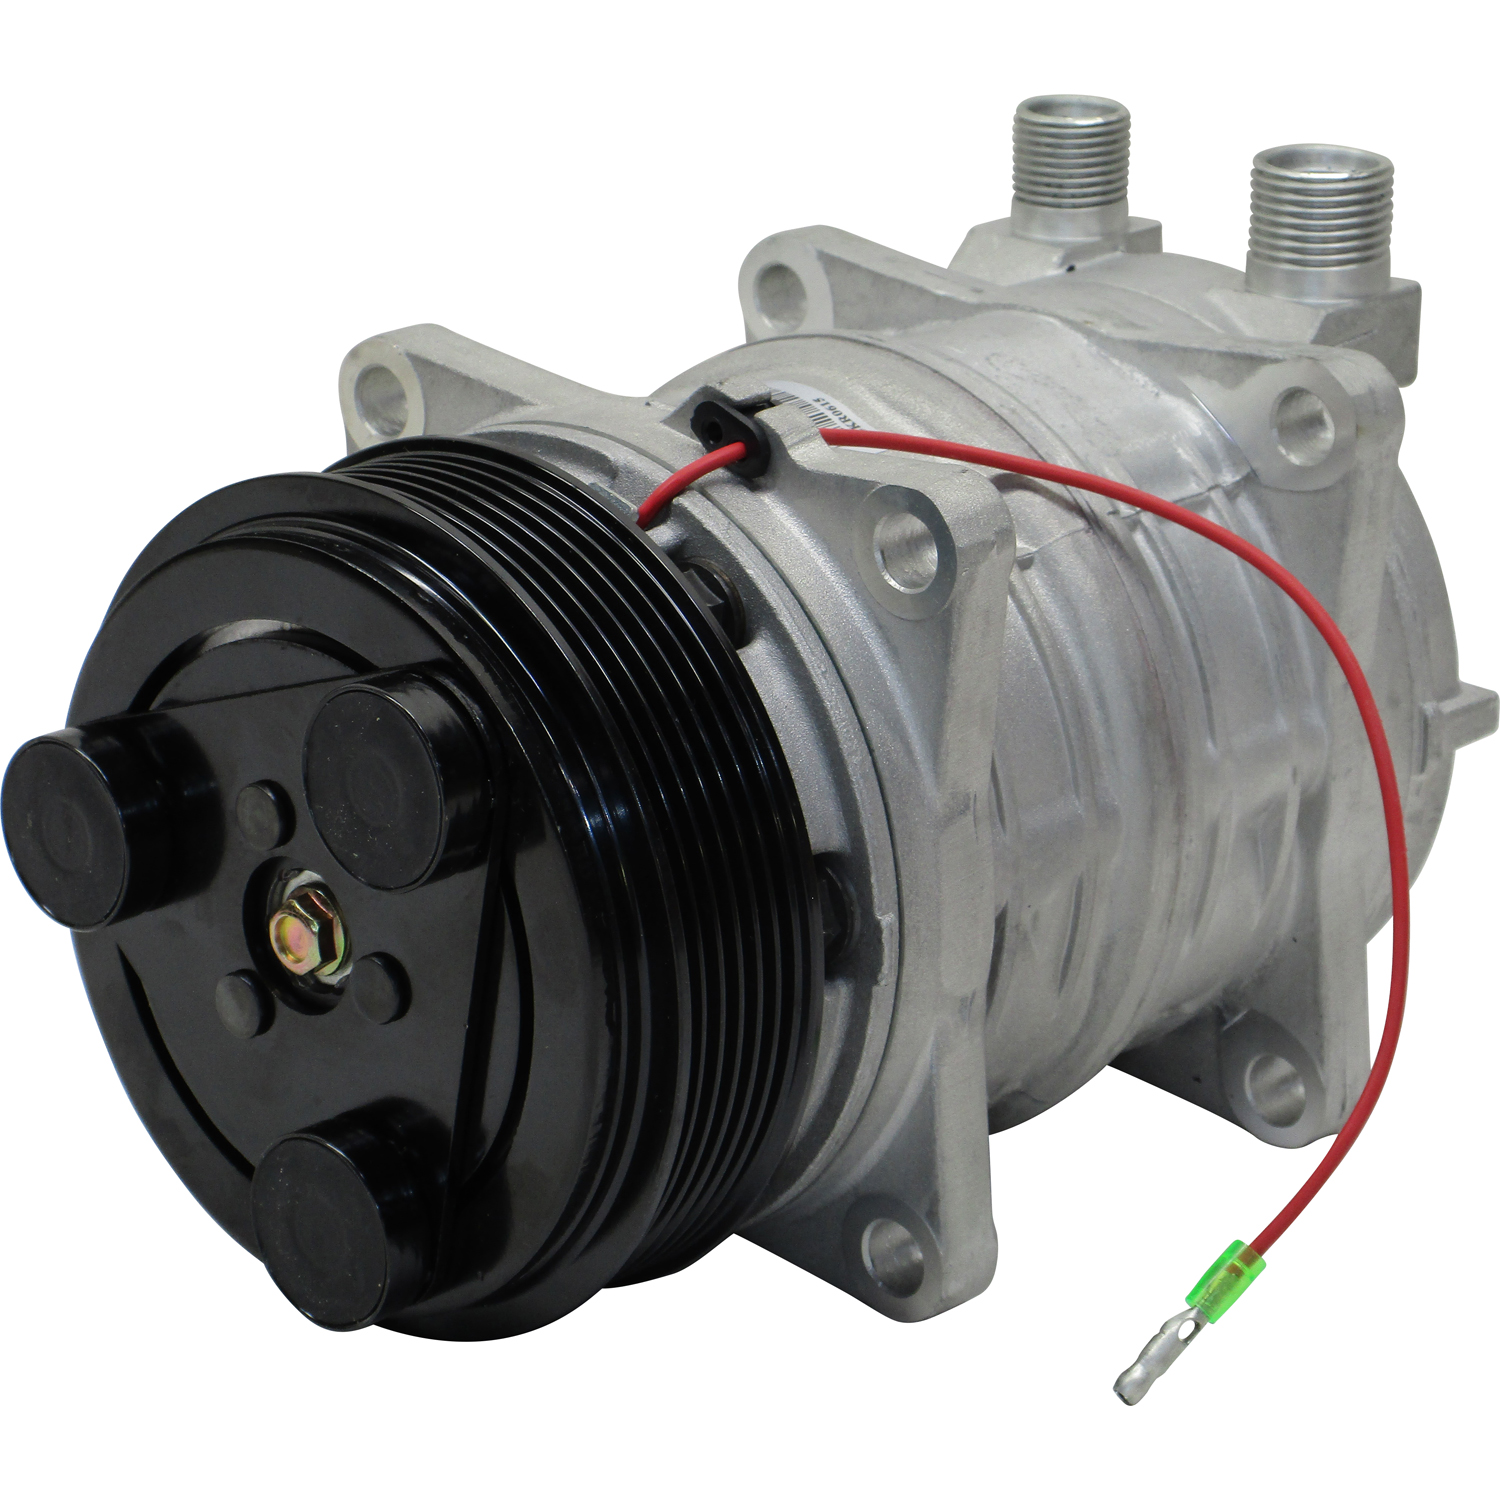 TM13 Compressor Assembly 1